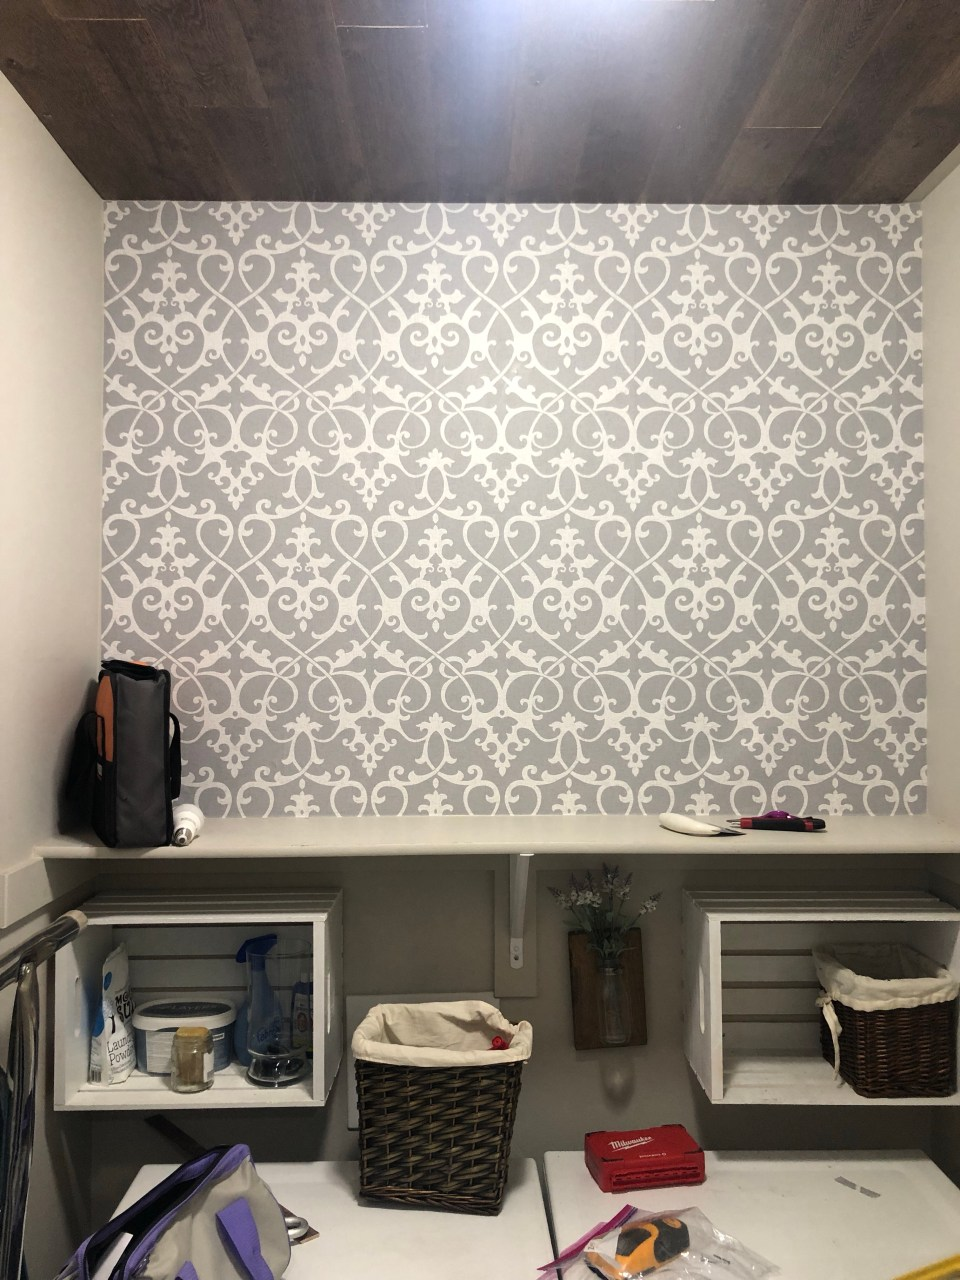 Laundry Room Renovation with Peel and Stick wallpaper